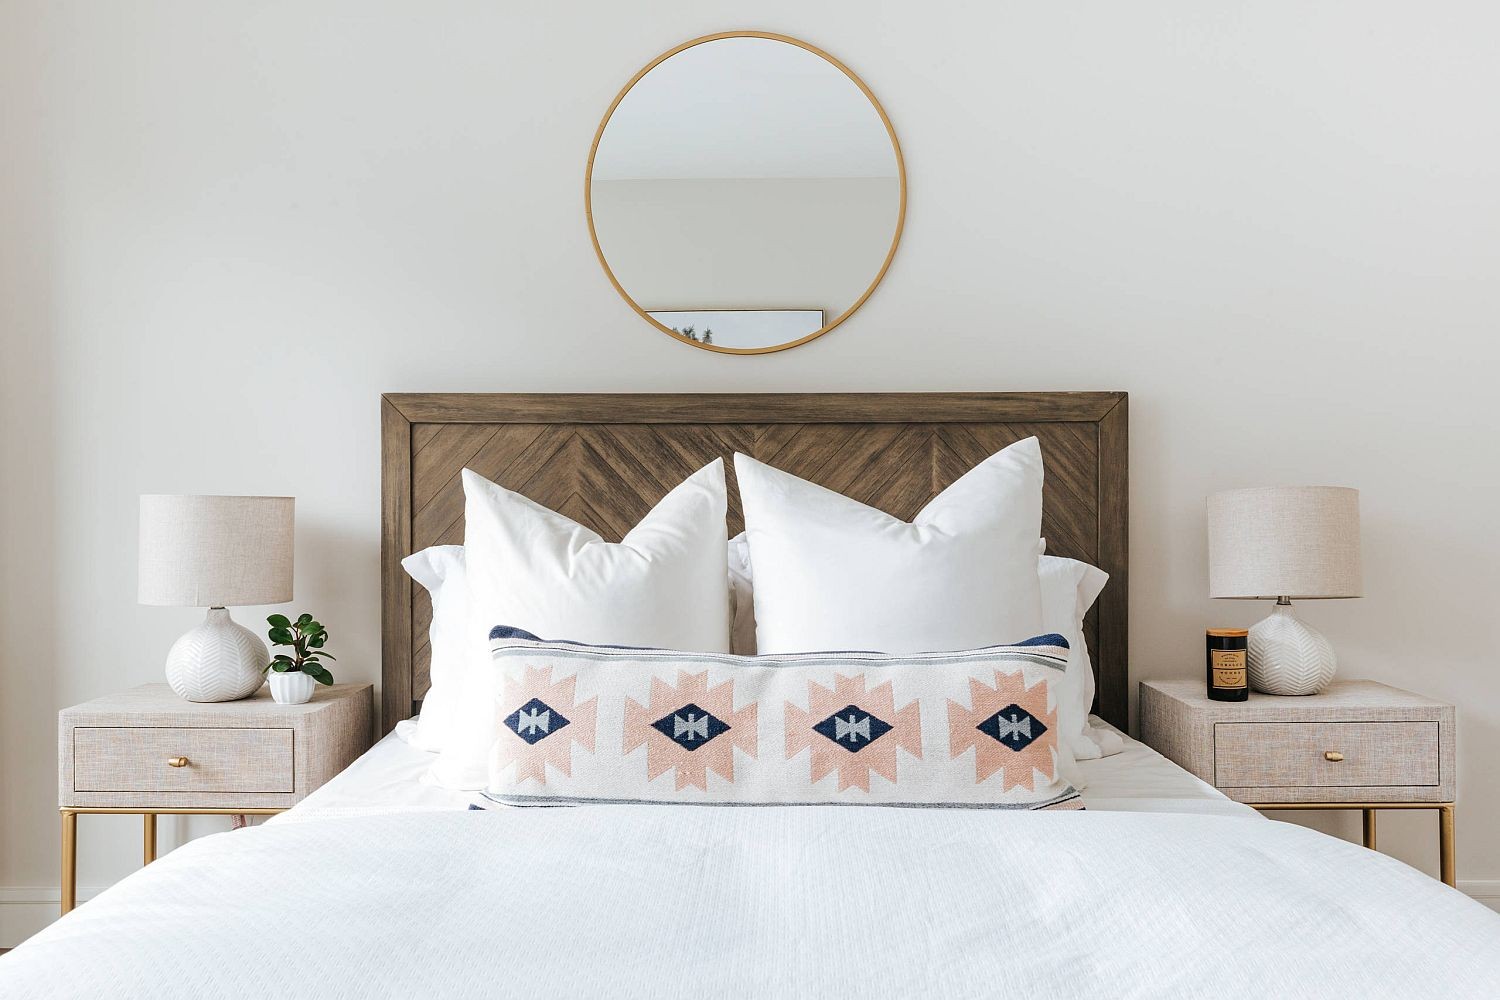 Custom wooden headboard for the smart contemporary bedroom in white